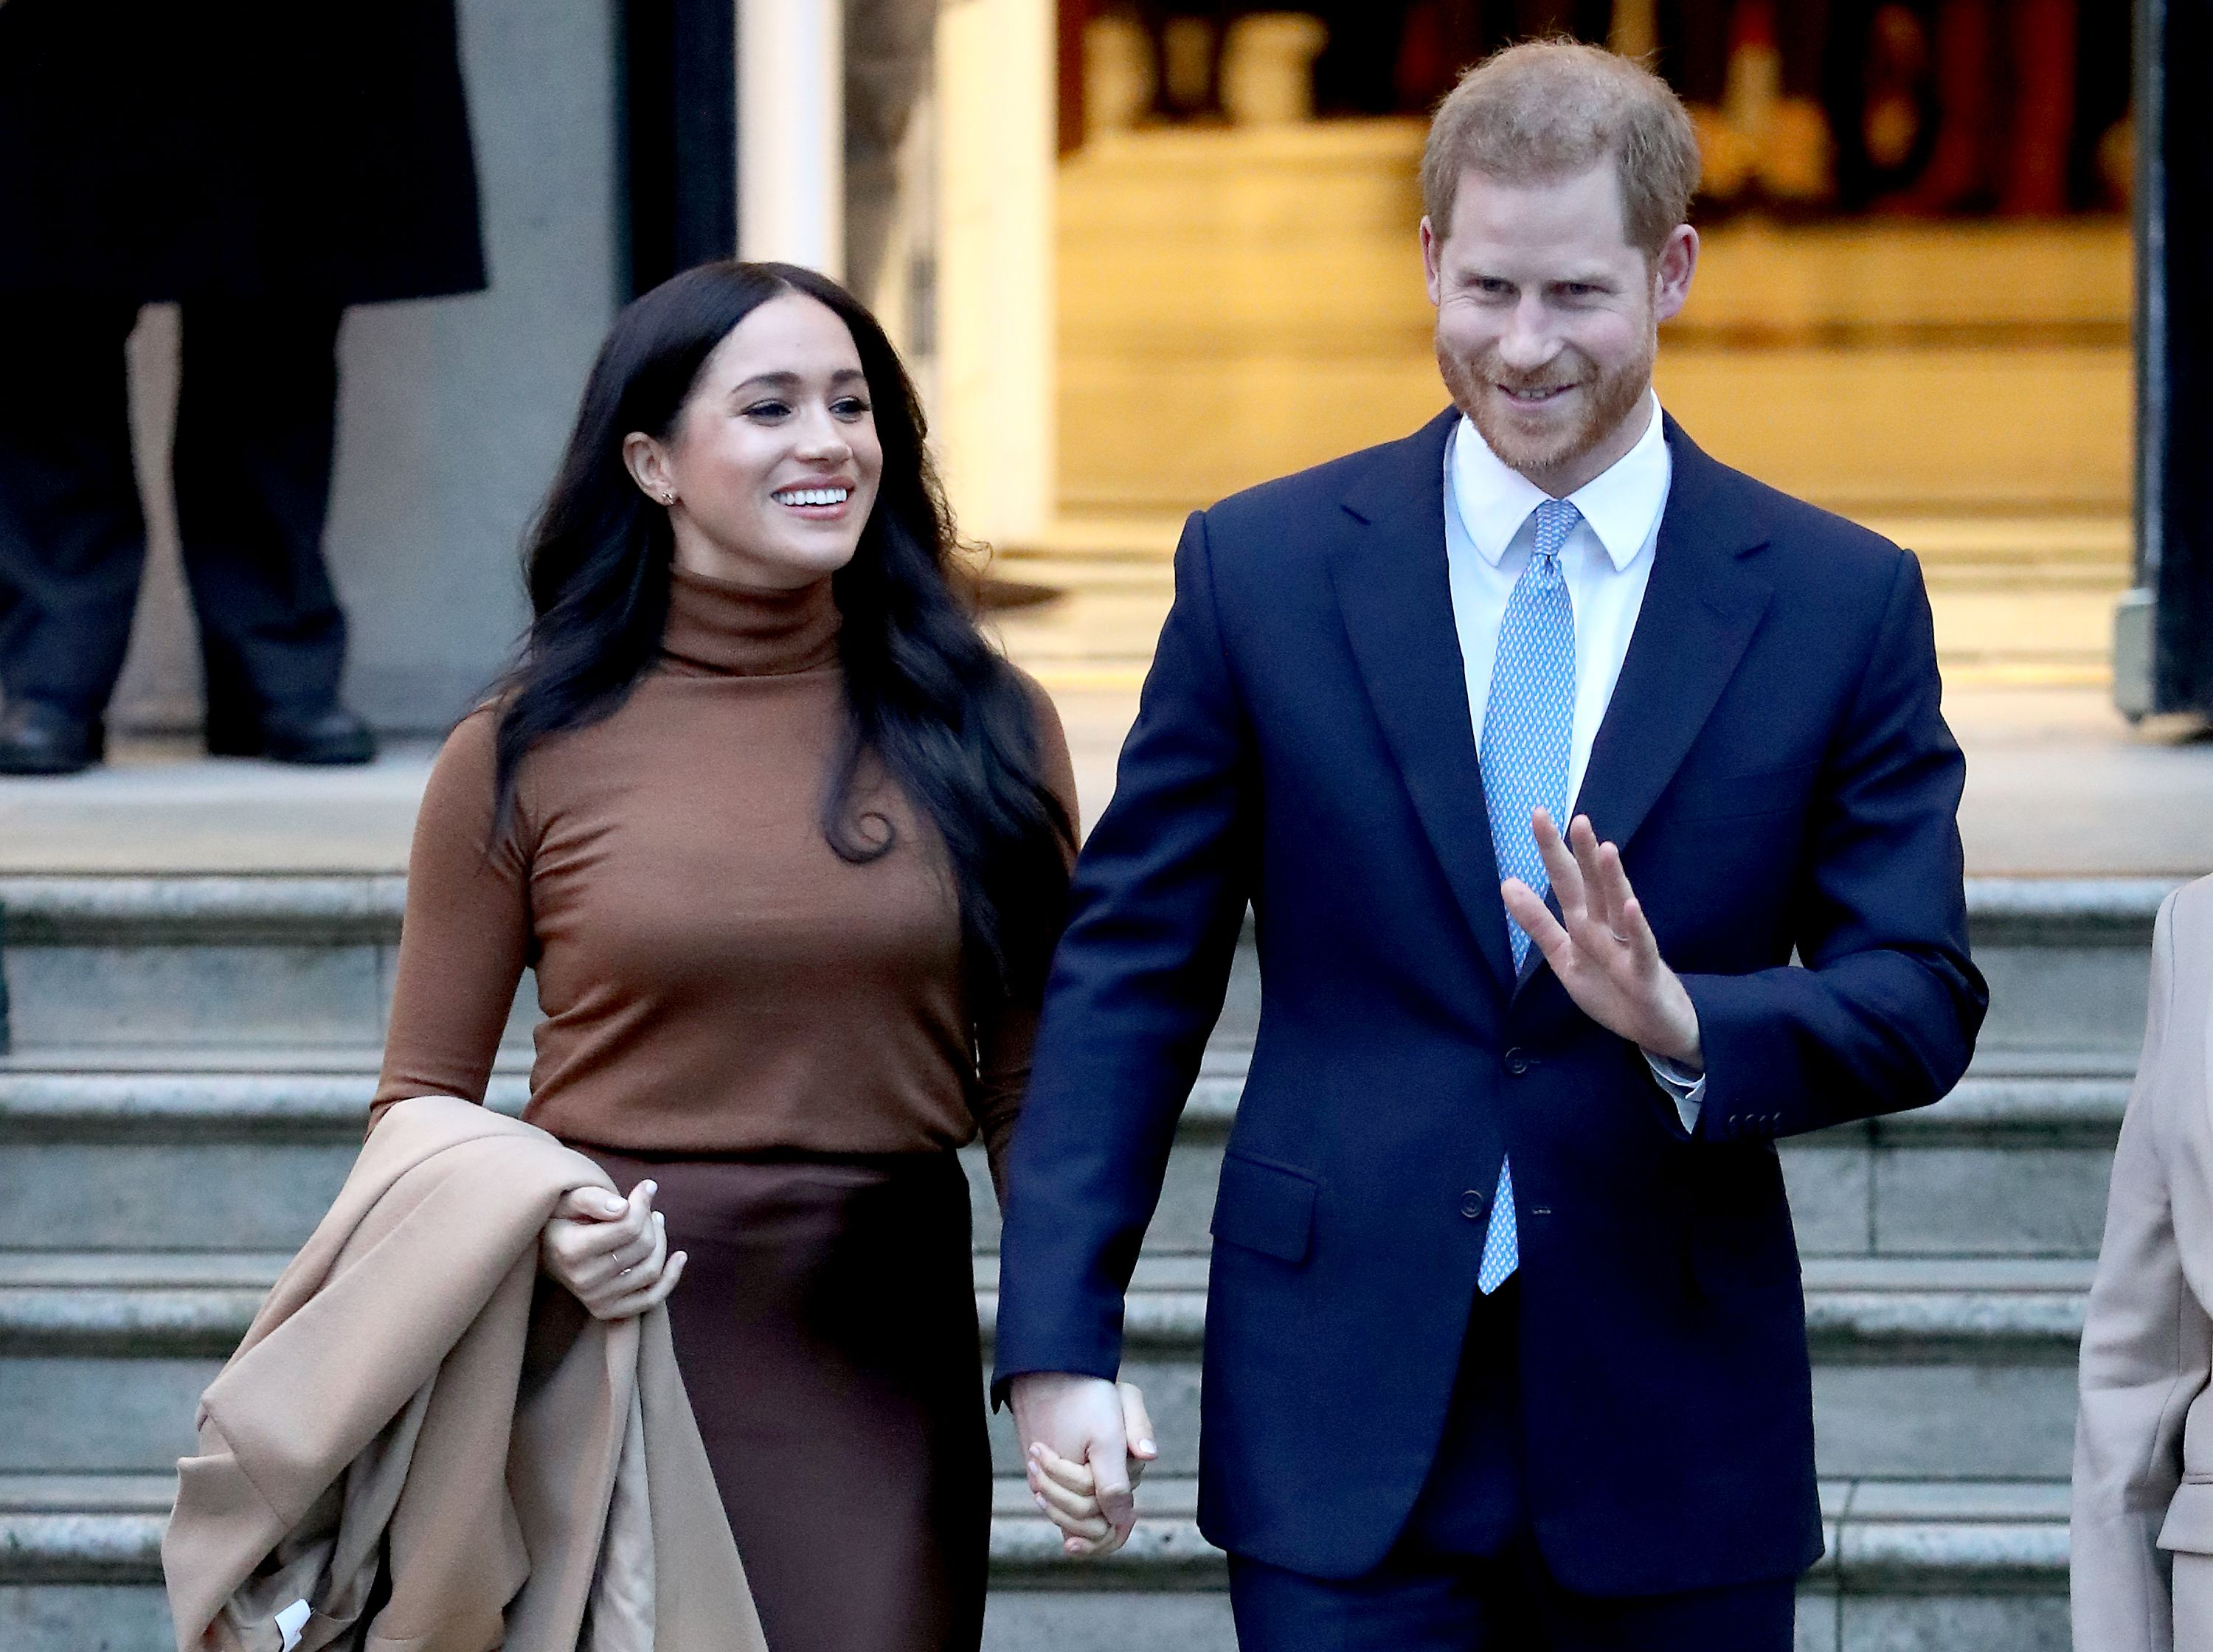 Meghan and Harry are now living oceans apart from the royal family.